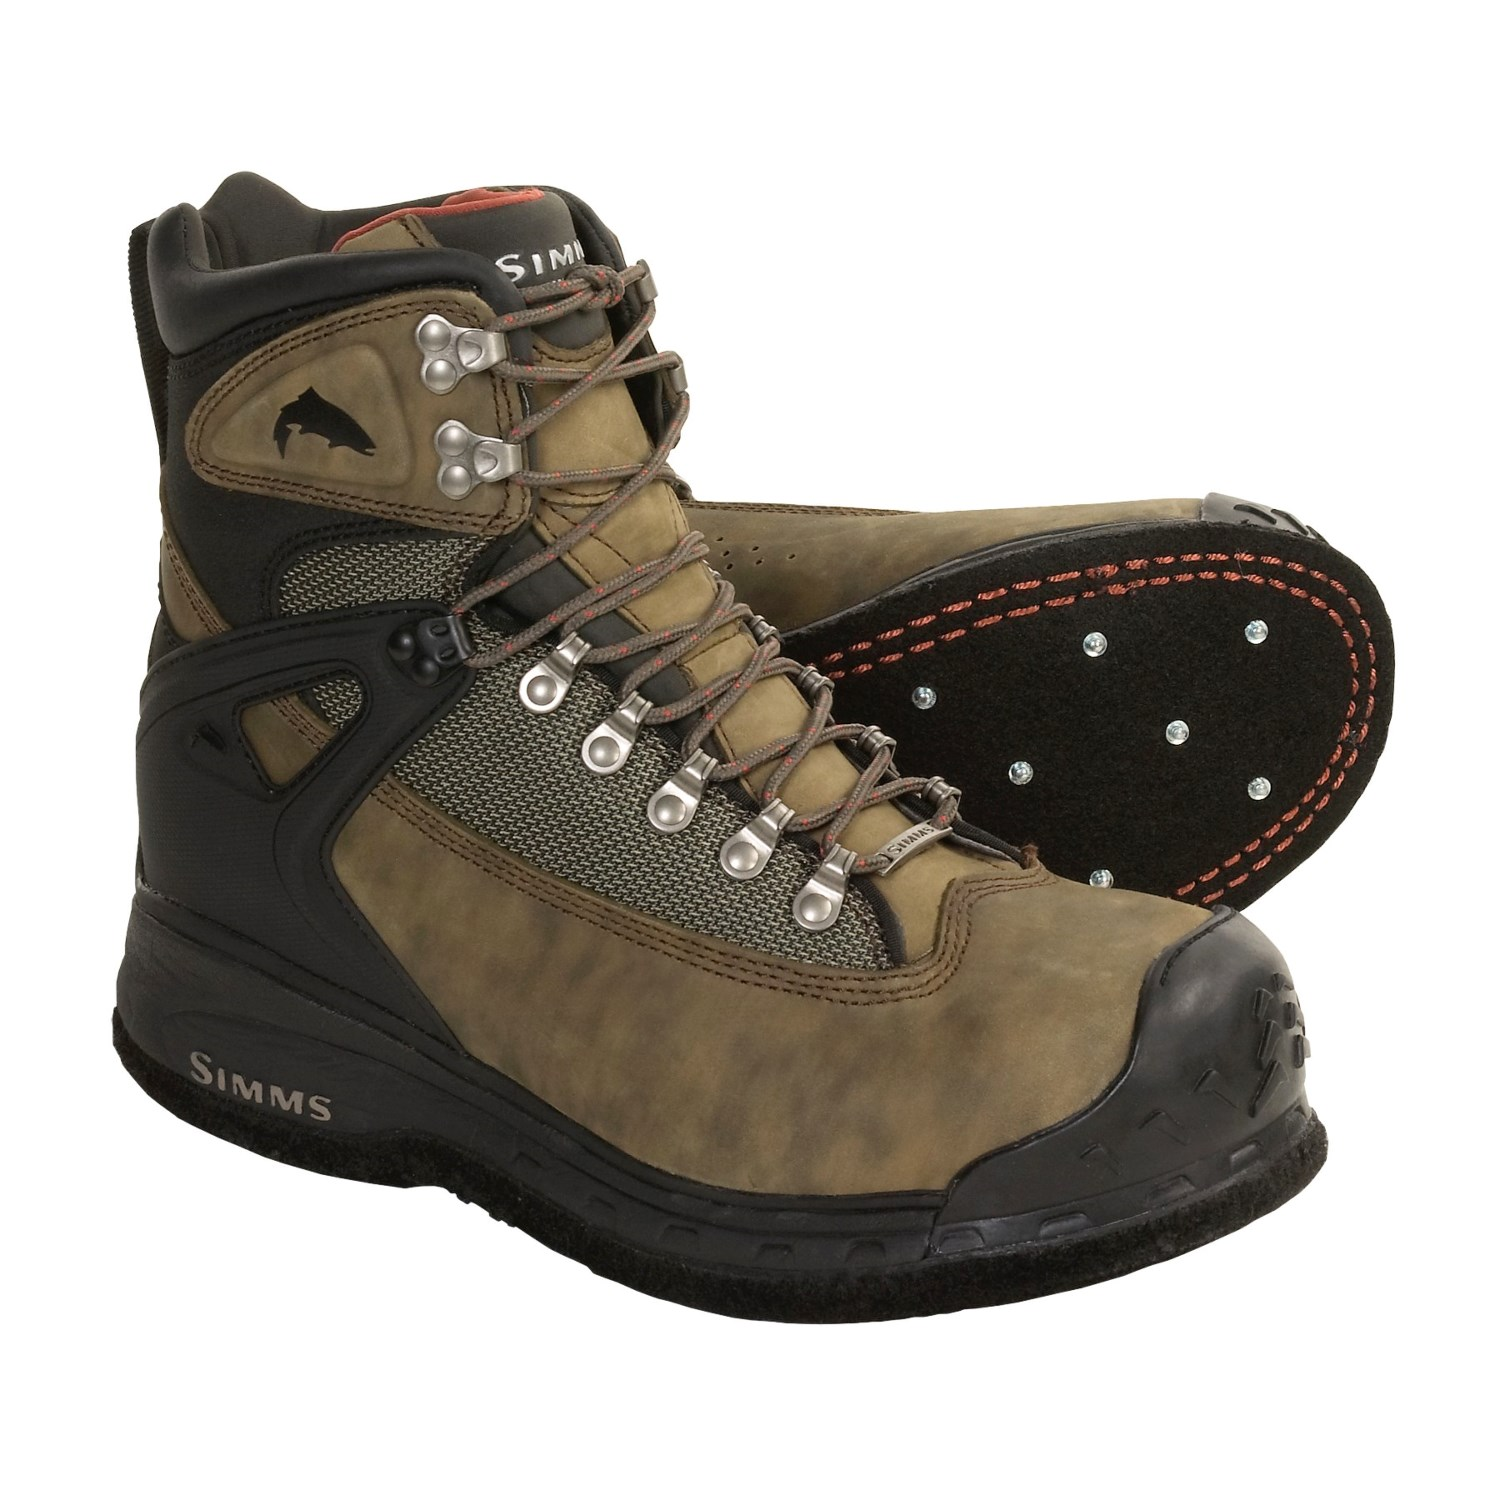 Simms Guide Wading Boots For Men 2384d Save 28